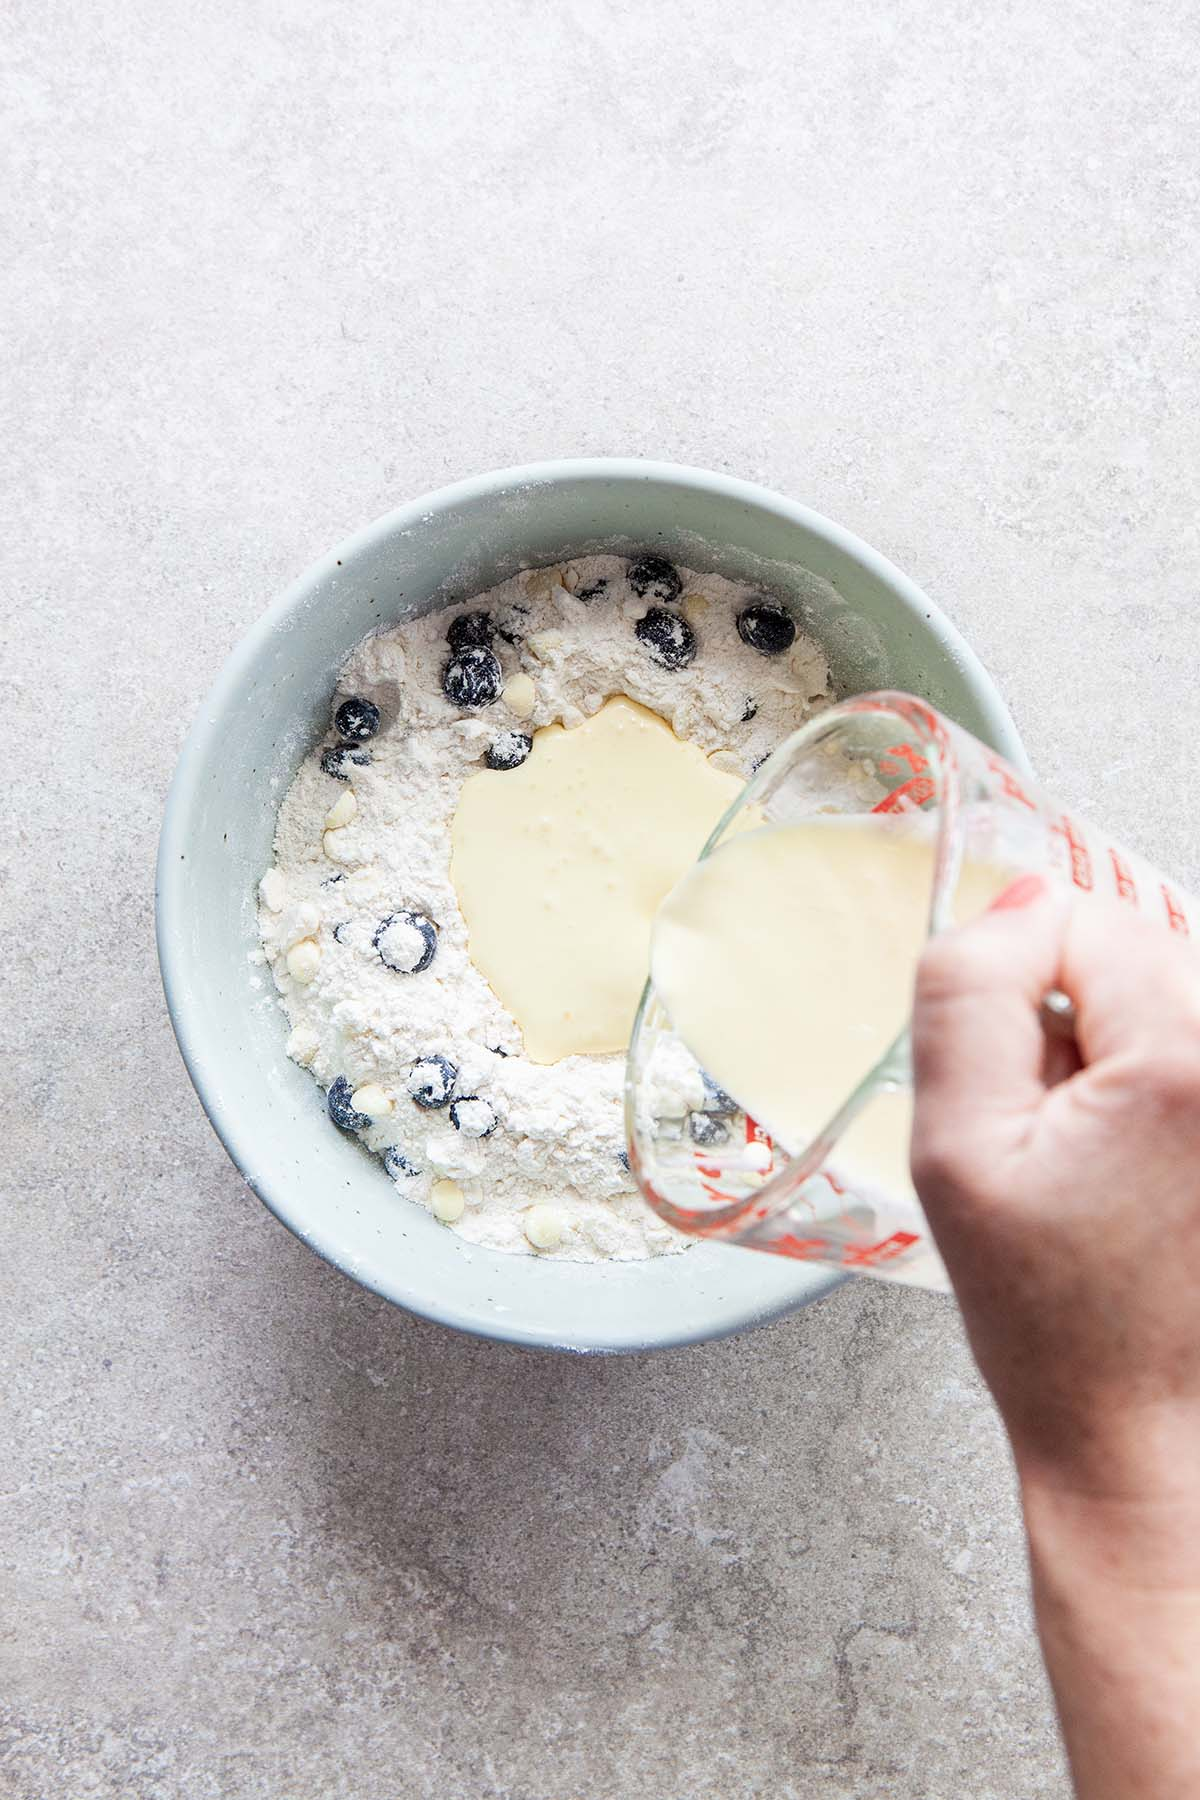 A hand pouring cream into a bowl filled with flour, blueberries, and white chocolate chips.